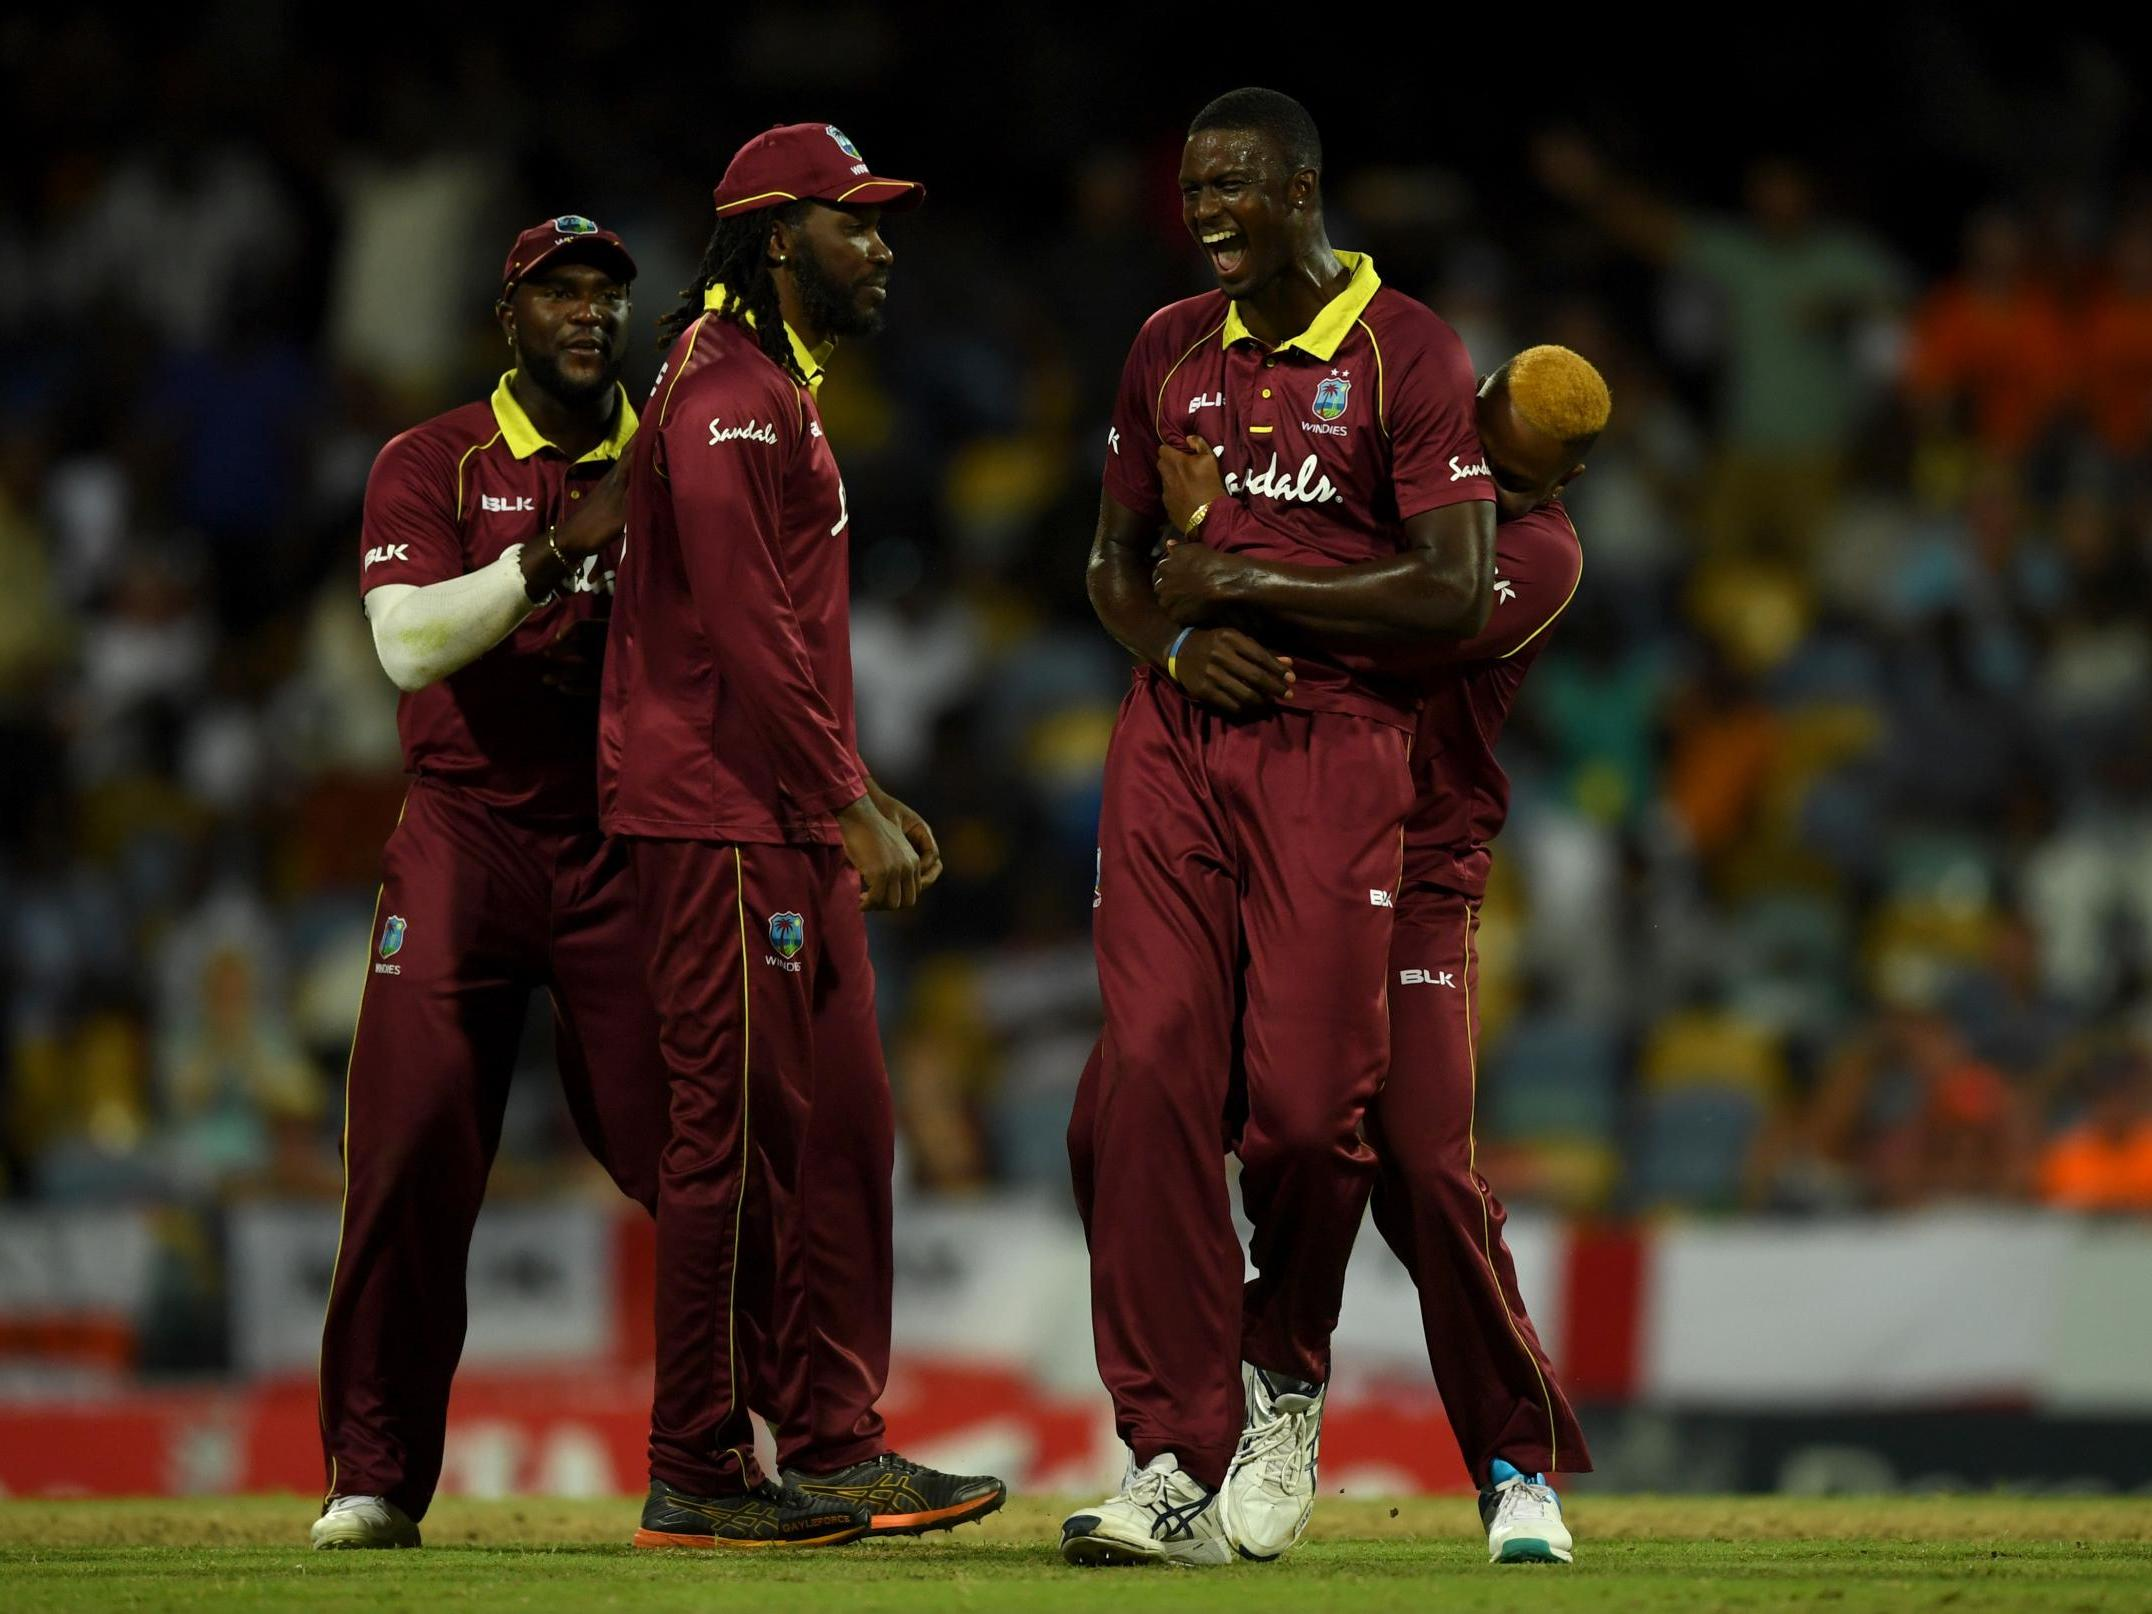 West Indies 2019 Cricket World Cup Squad Key Players